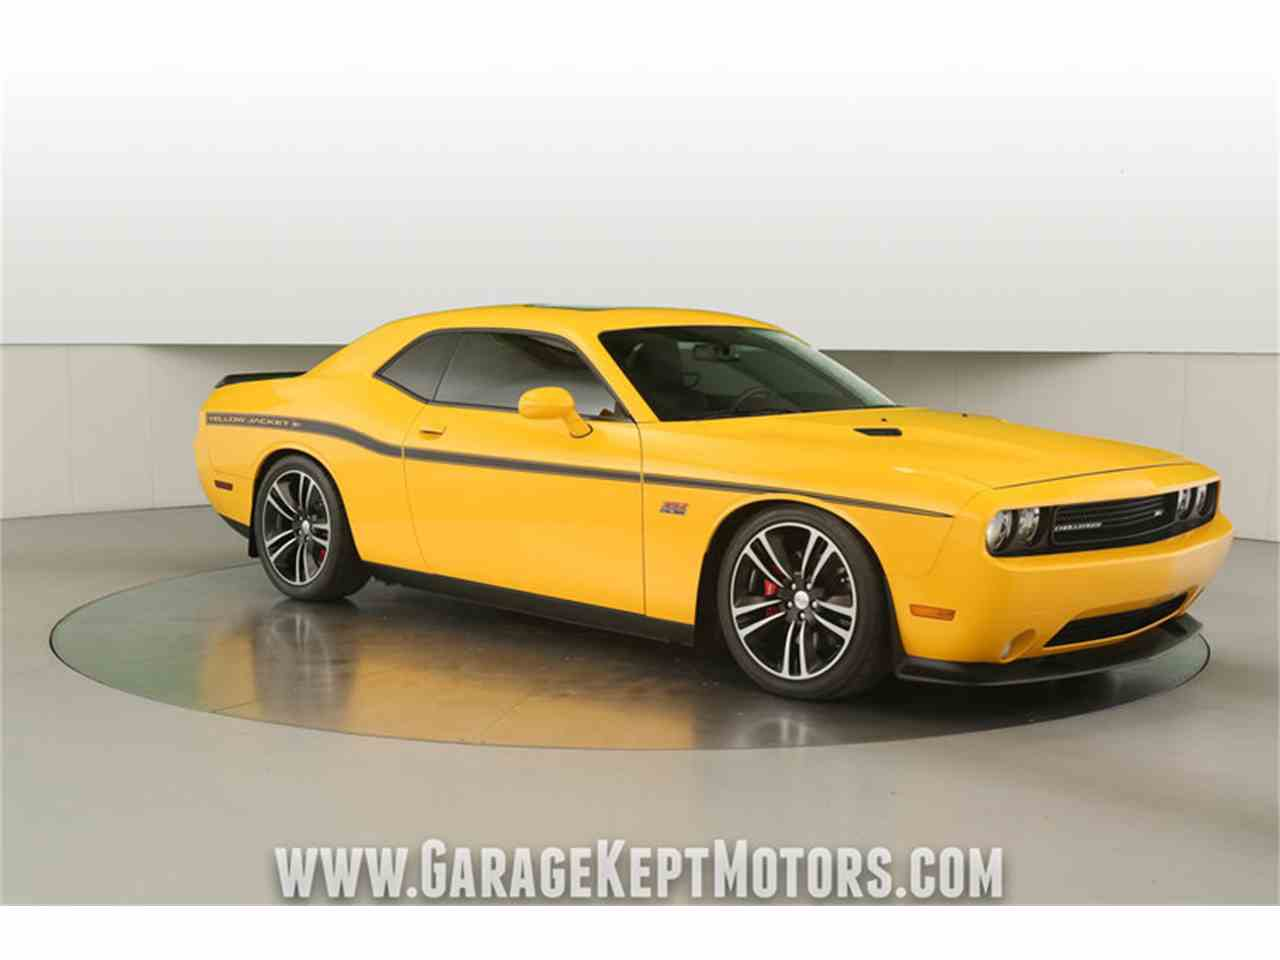 Large Picture of '12 Challenger SRT8 392 Yellow Jacket located in Grand Rapids Michigan Offered by Garage Kept Motors - MAXR